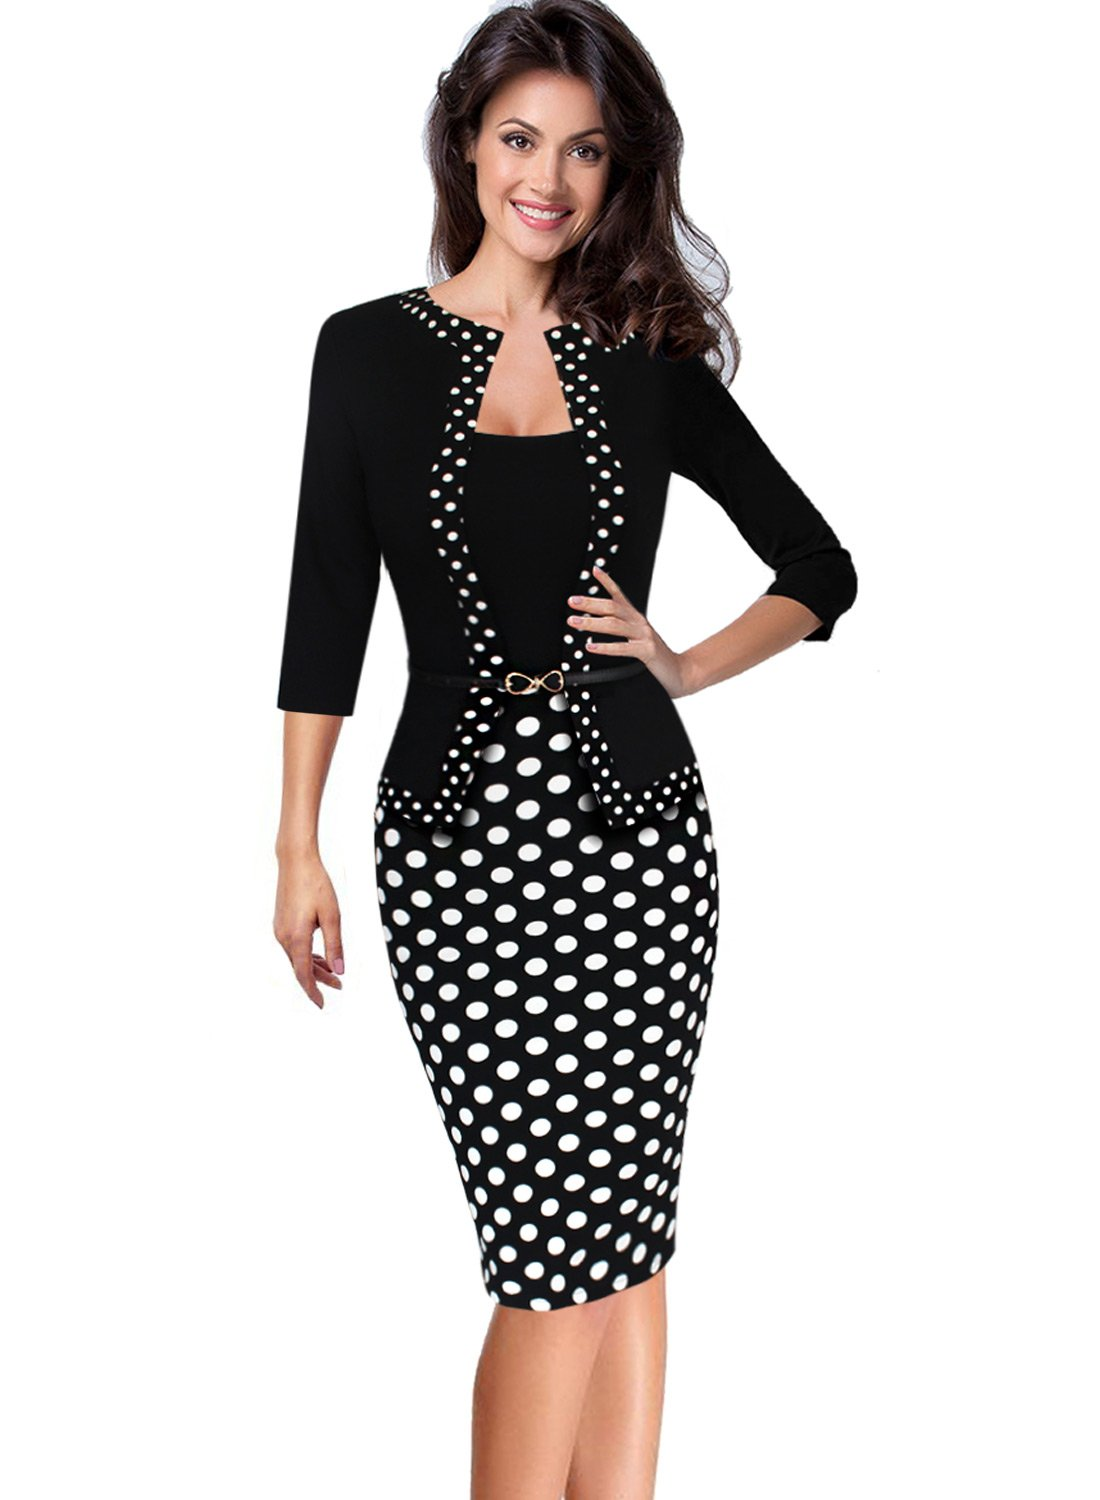 VfEmage Womens Vintage Faux Jacket One-Piece Wear to Work Office Dress 4515 BLK S